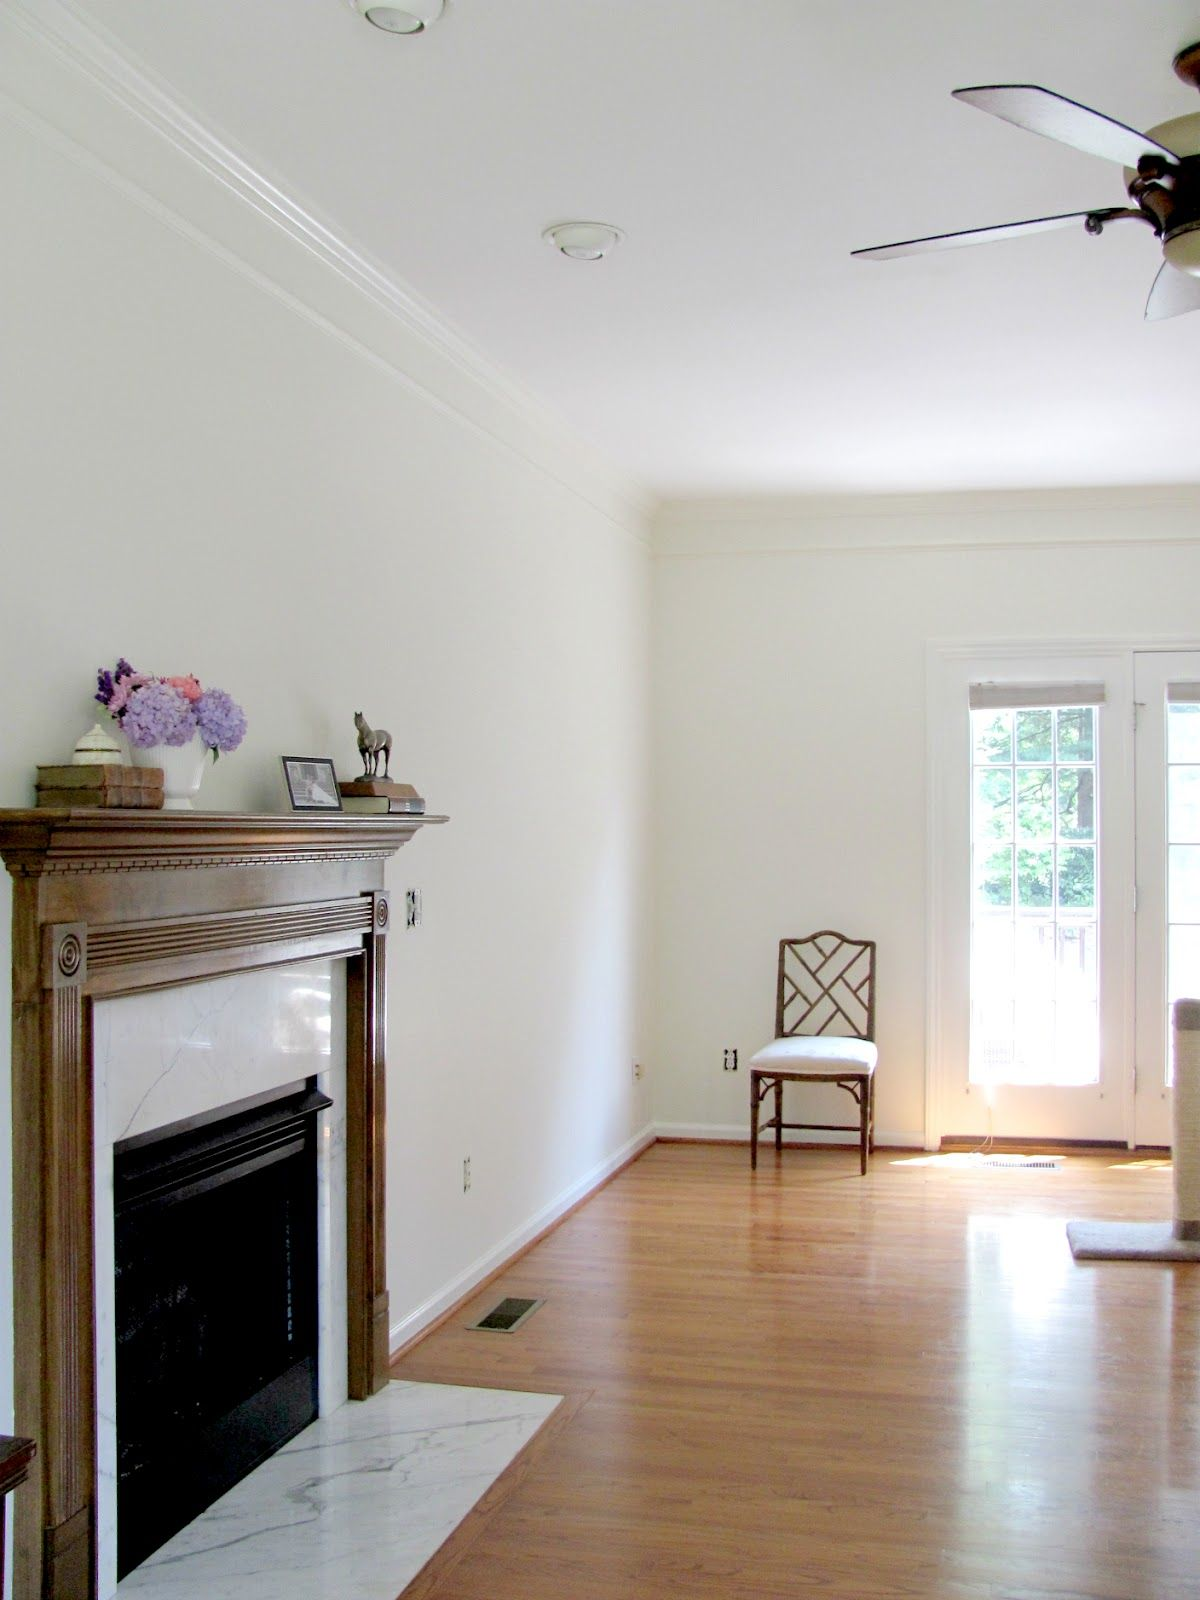 Walls benjamin moore acadia white oc 38 in eggshell crown for Best paint color for interior walls